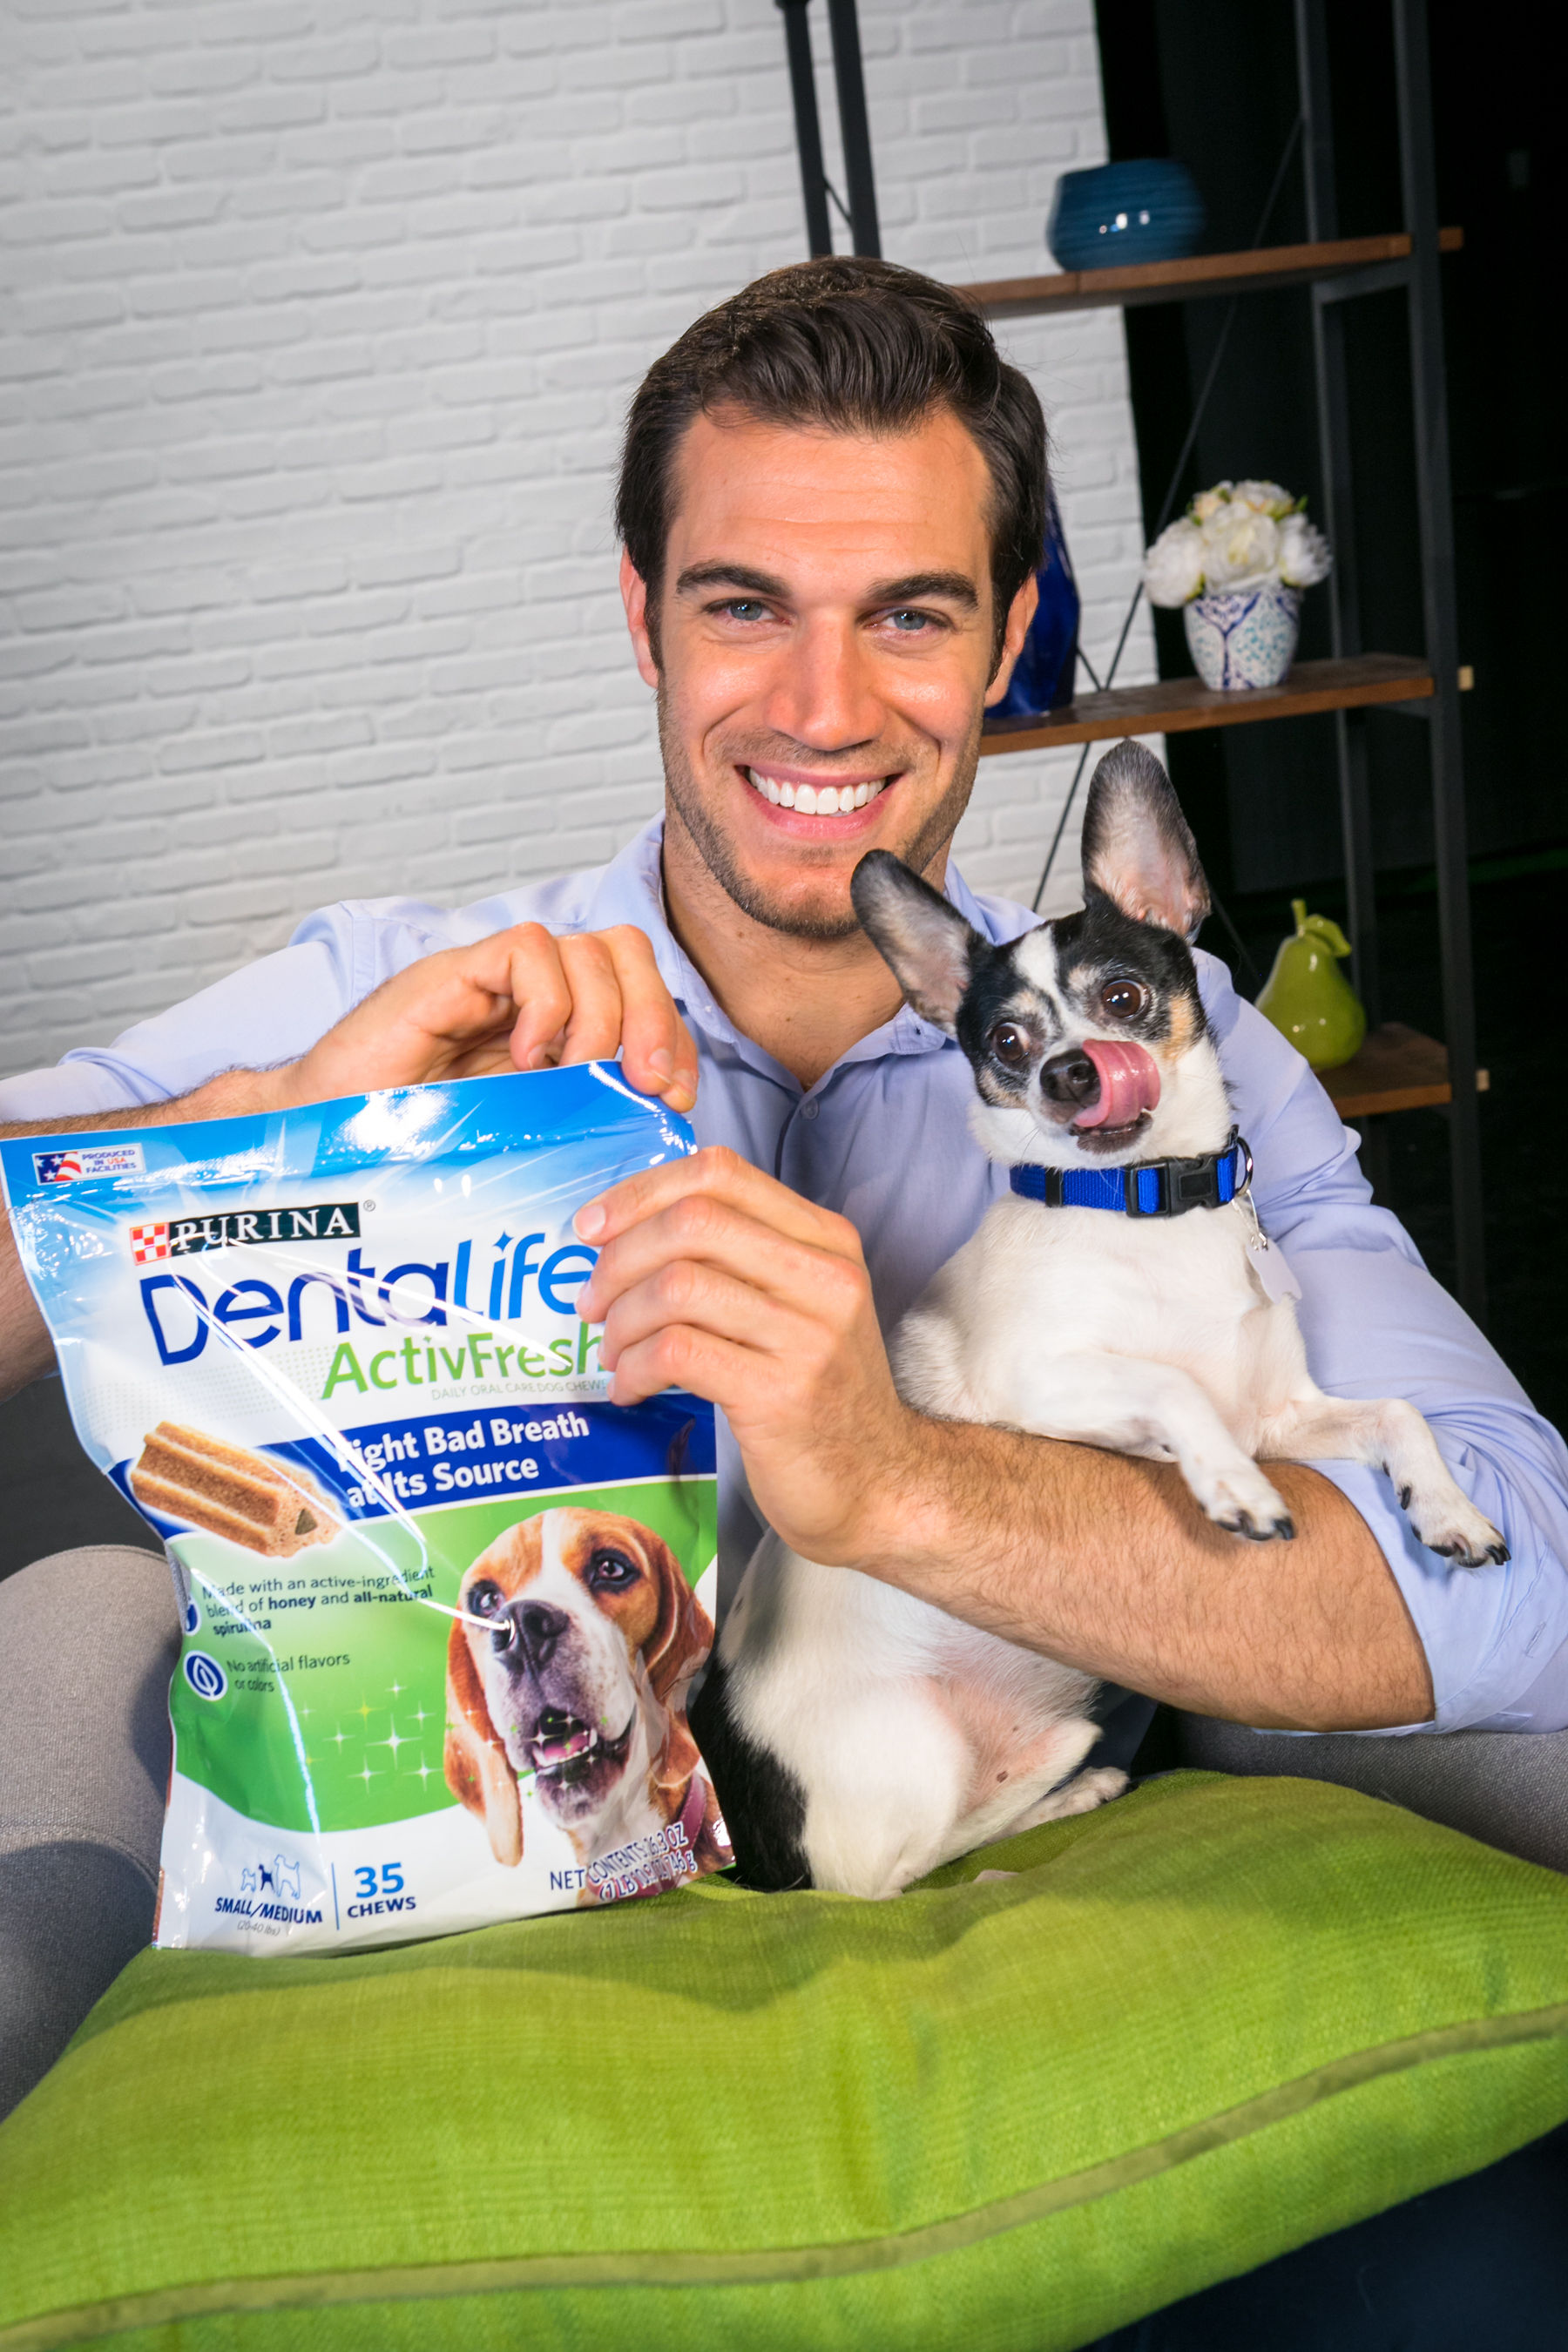 "Well-known veterinarian and host of Animal Planet's ""Evan Goes Wild,"" Dr. Evan Antin and his dog Henry partner with Purina DentaLife to launch ActivFresh daily oral chews, a new breakthrough technology that goes beyond simply masking bad breath. The new chews are made with an active-ingredient blend of honey and natural spirulina and have been scientifically tested to fight bad breath at the source."